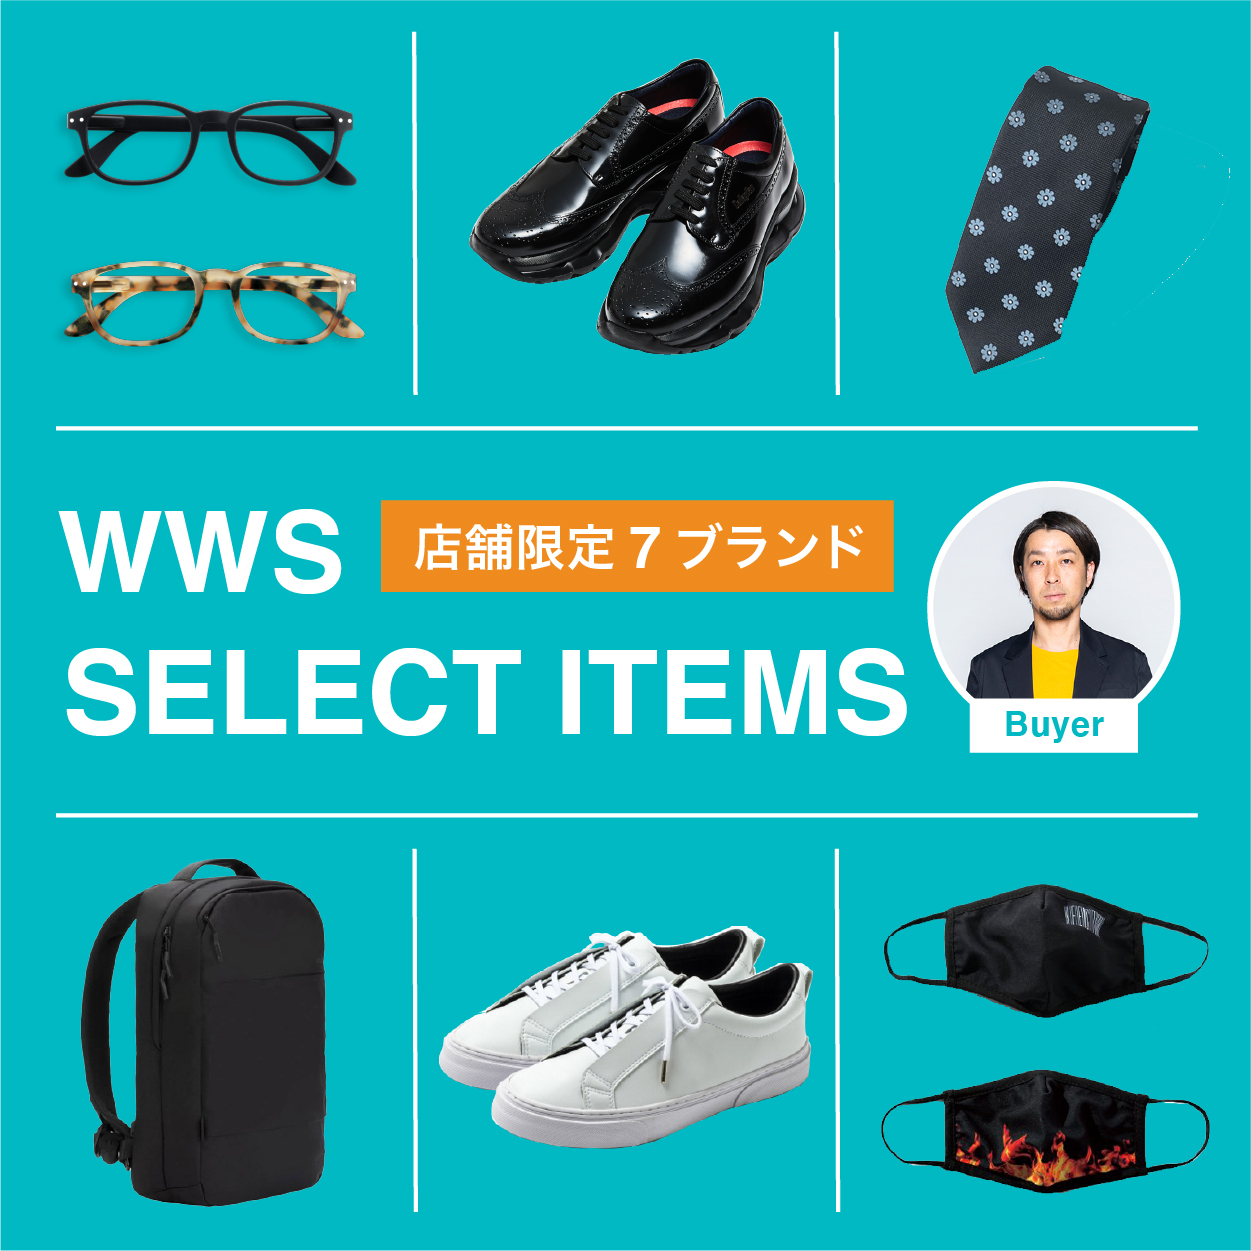 WWS SELECT ITEMS